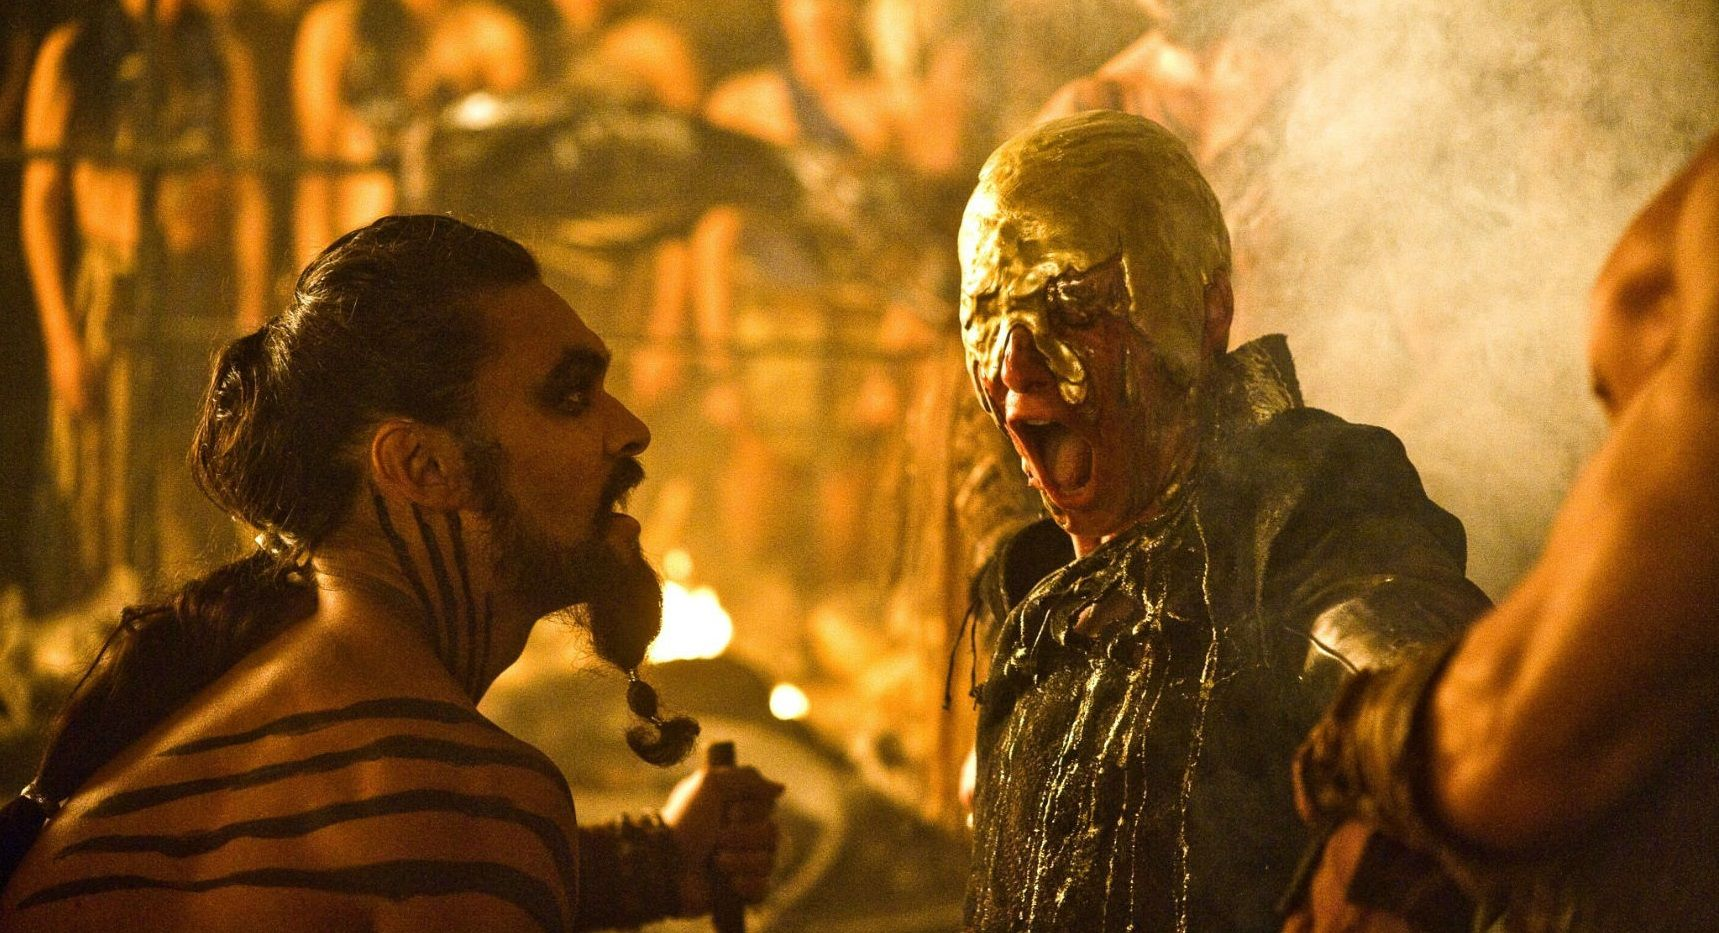 10 Game Of Thrones Deaths That Made Us Cheer Instead Of Tear